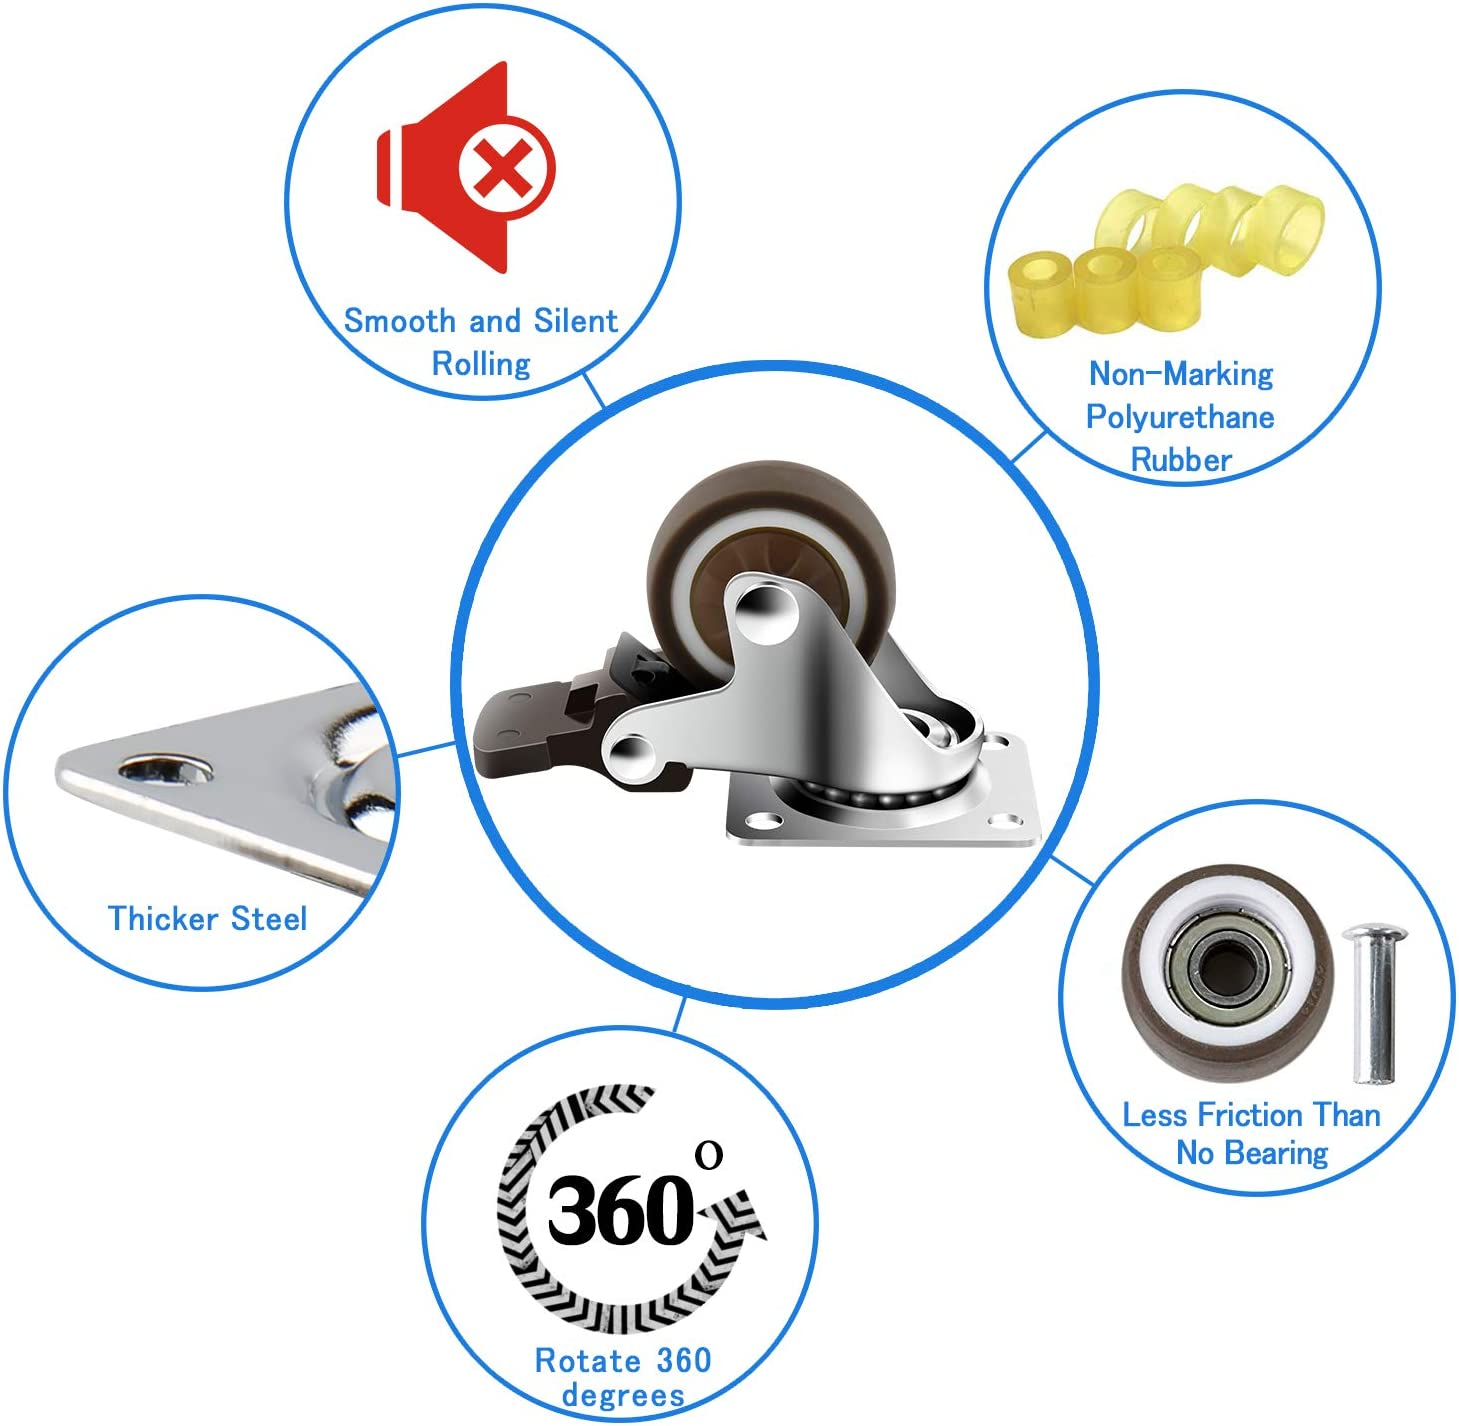 Pack of 4 250 Lbs Per Caster 3 Swivel Caster Wheels with Safety Dual Locking and Polyurethane Foam No Noise Wheels Heavy Duty